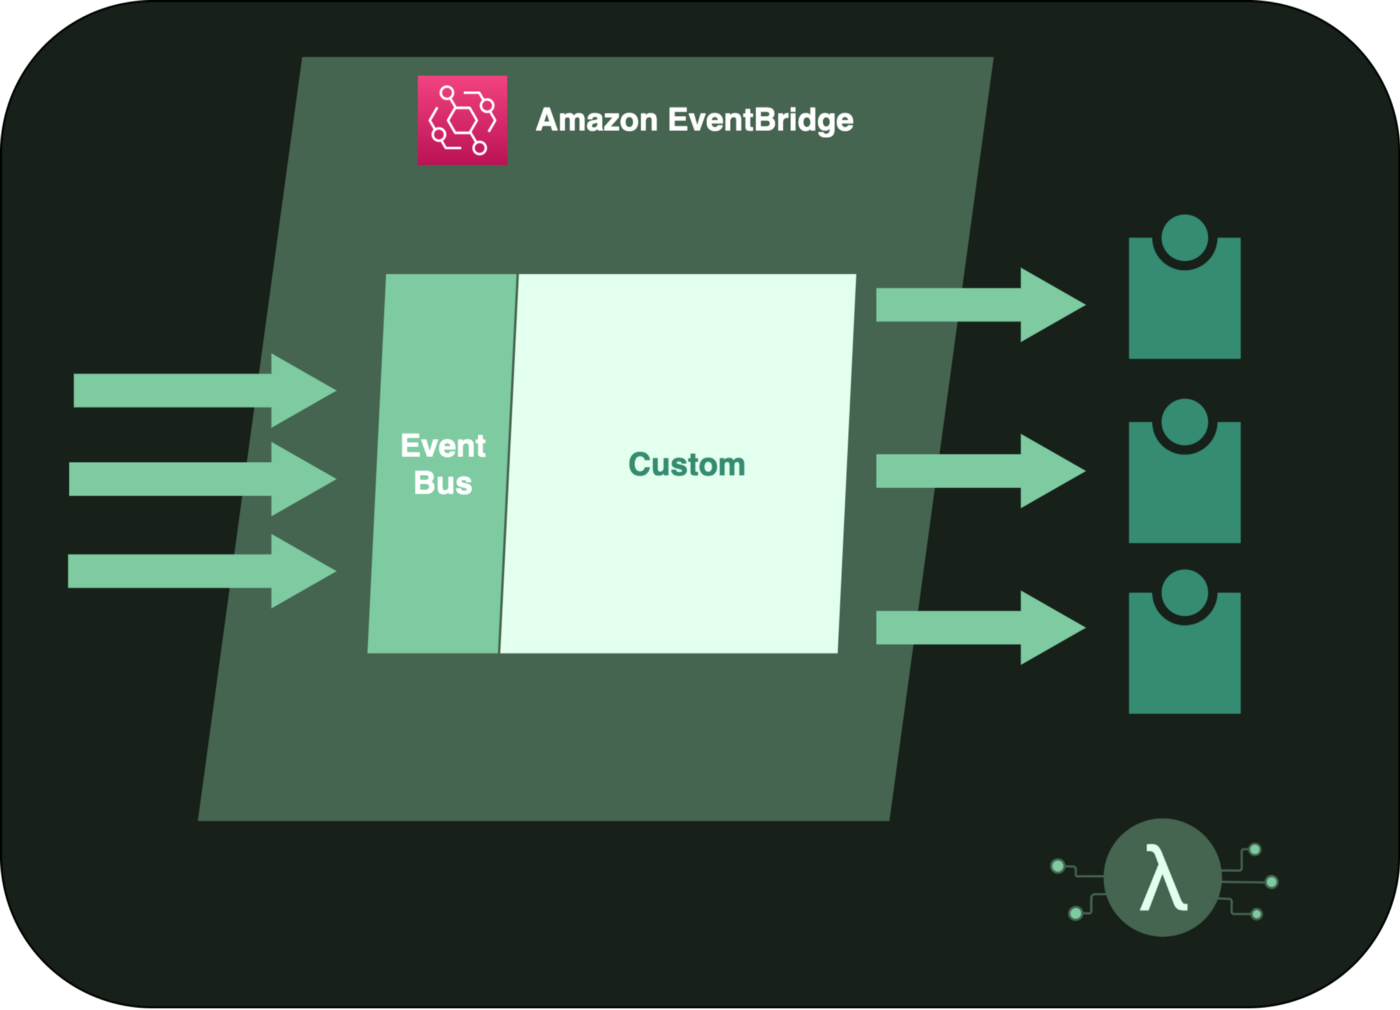 Diagram showing Amazon EventBridge service with single custom EventBus with arrows in and arrows out to 3 different services